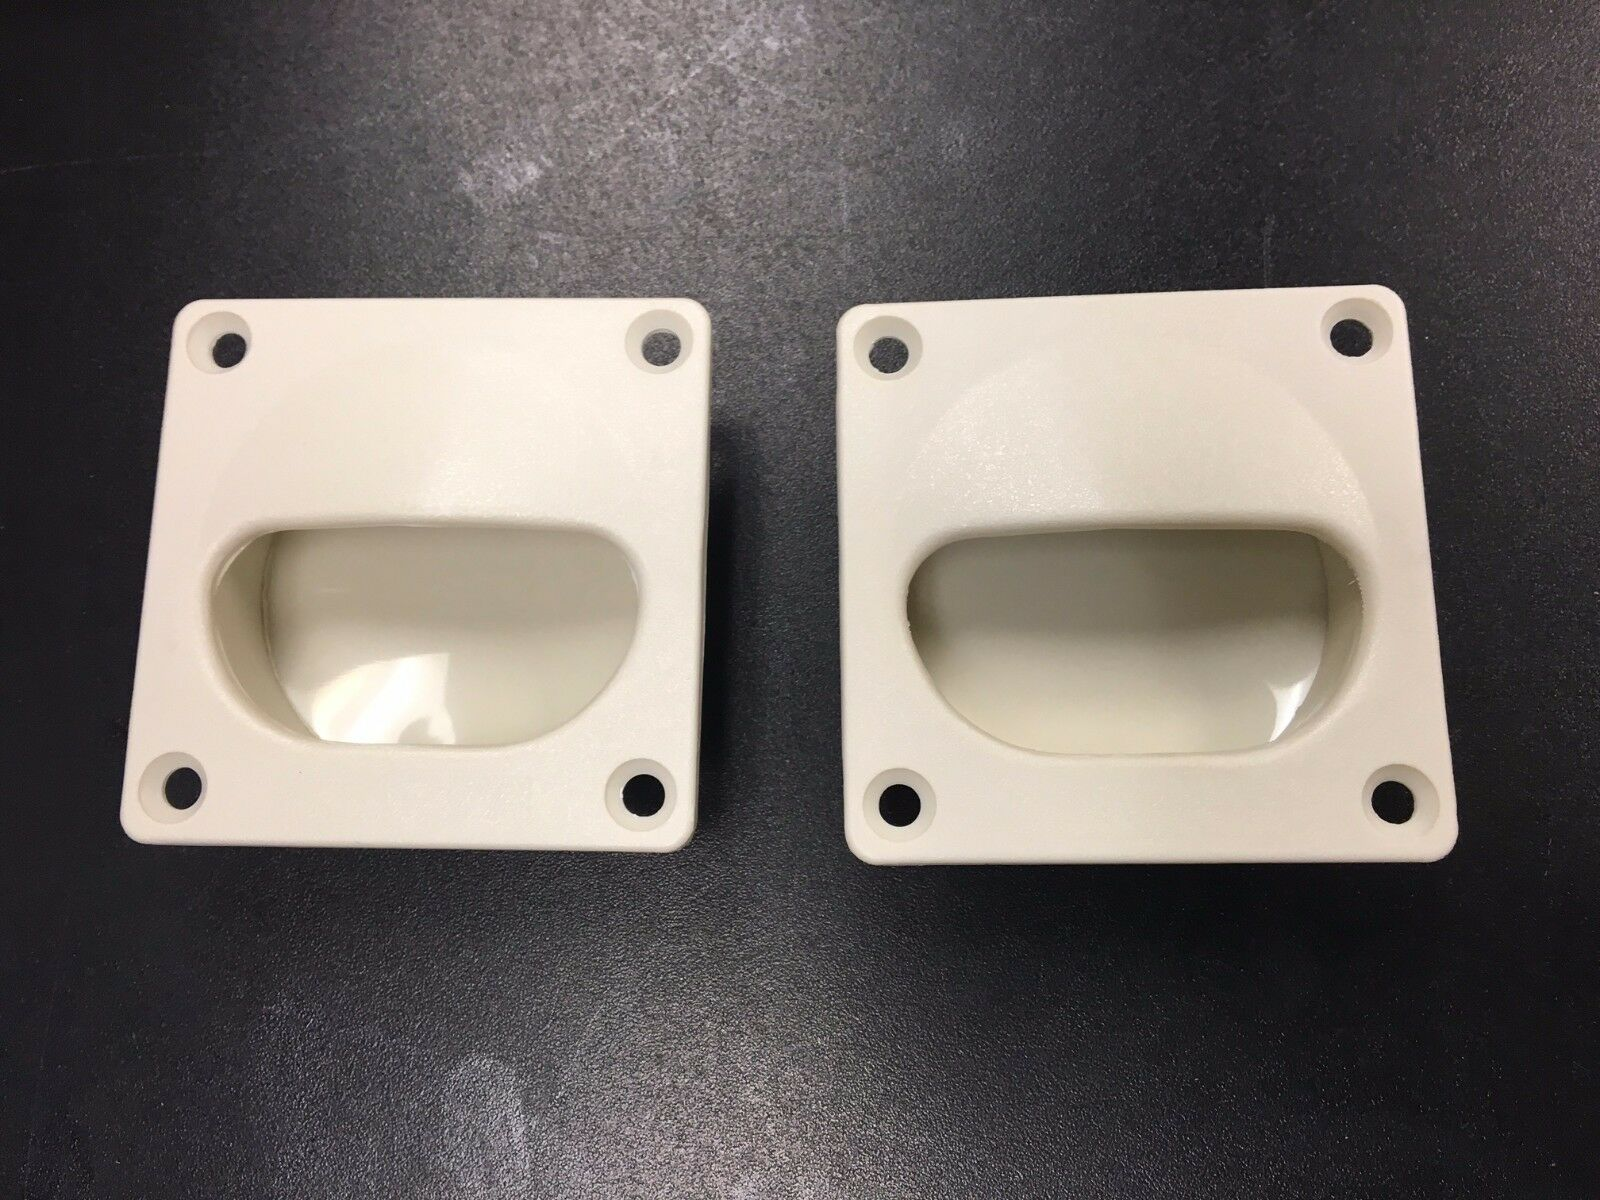 1 PAIR White Flush Mount Drawer Pull #81390-W  Molded in Textured ABS Plastic